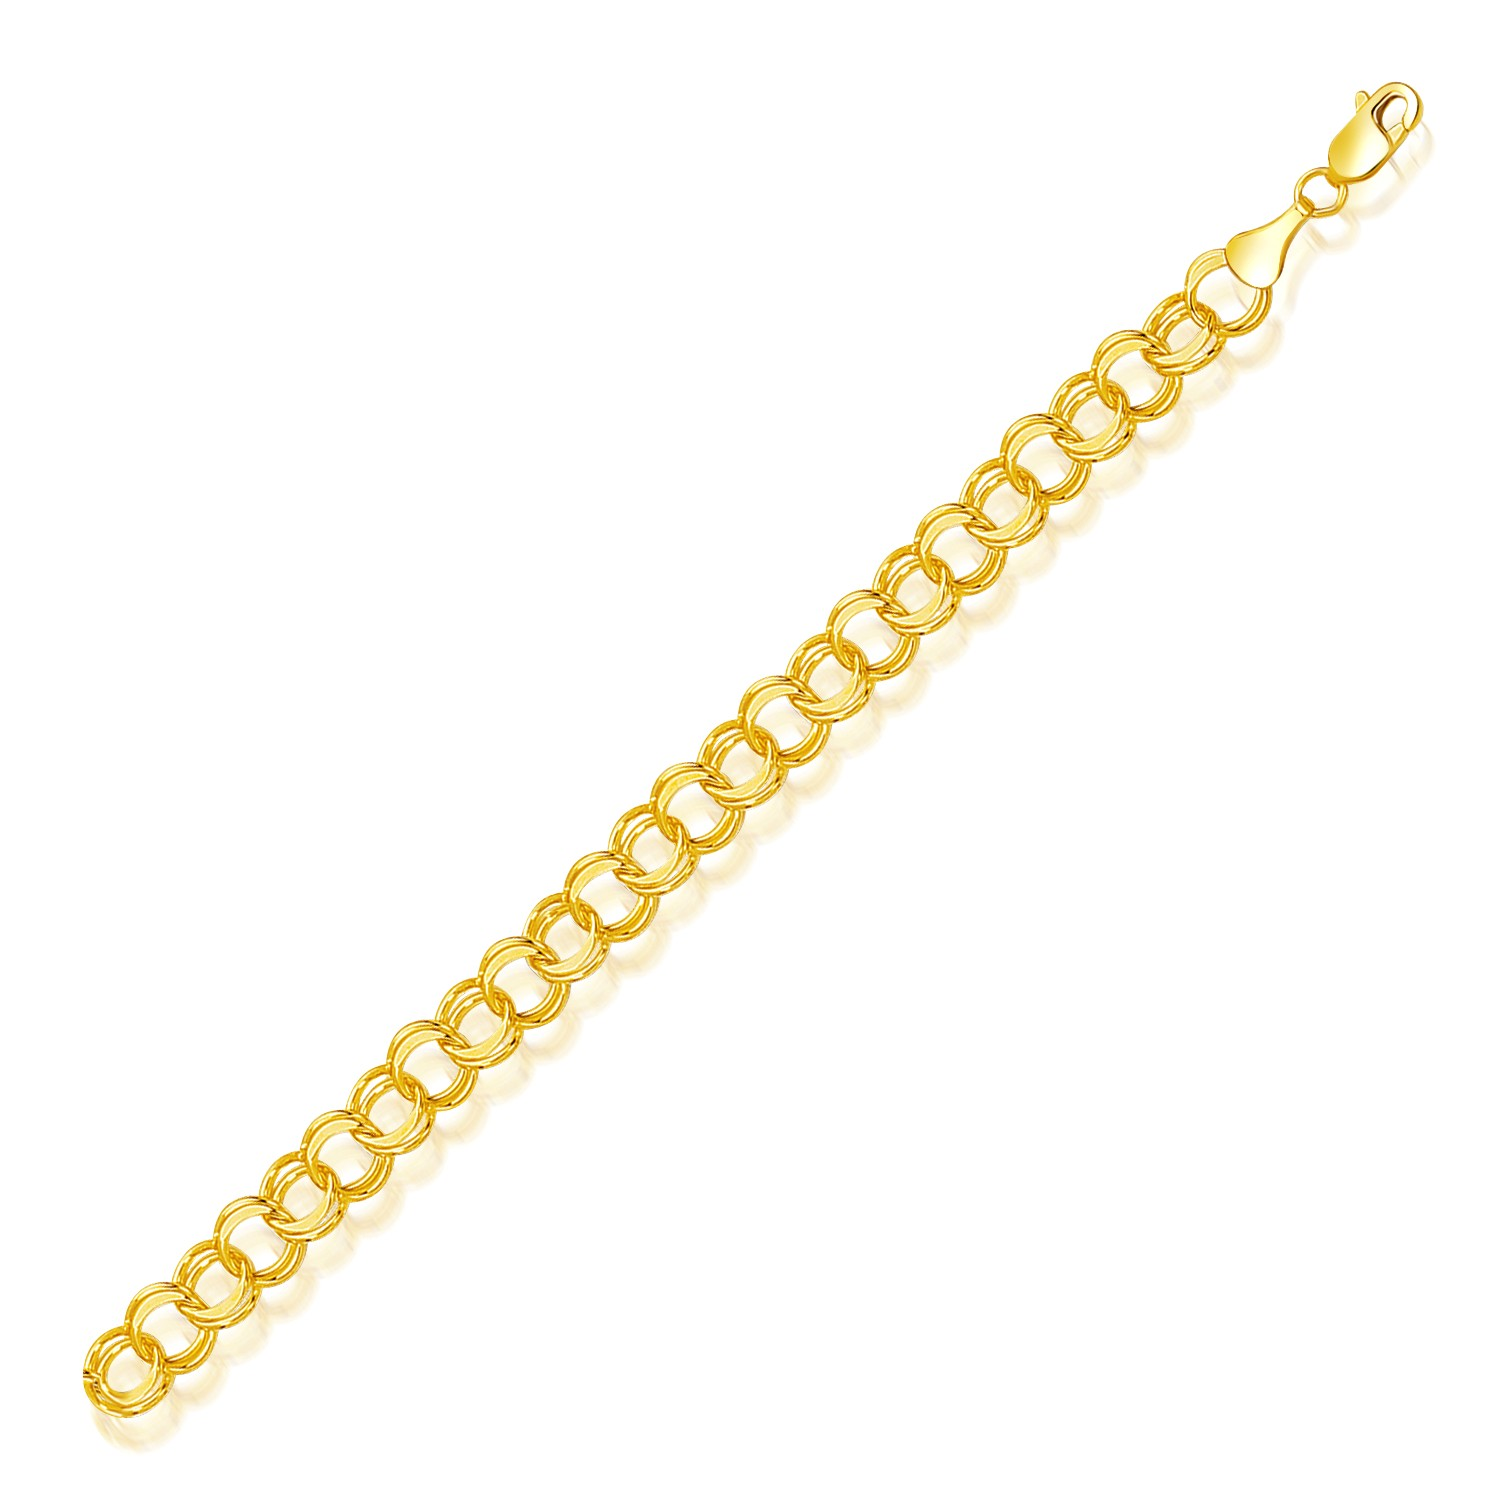 14k Yellow Gold Charm Bracelet: Double Link Solid Charm Bracelet In 14K Yellow Gold (8.0mm